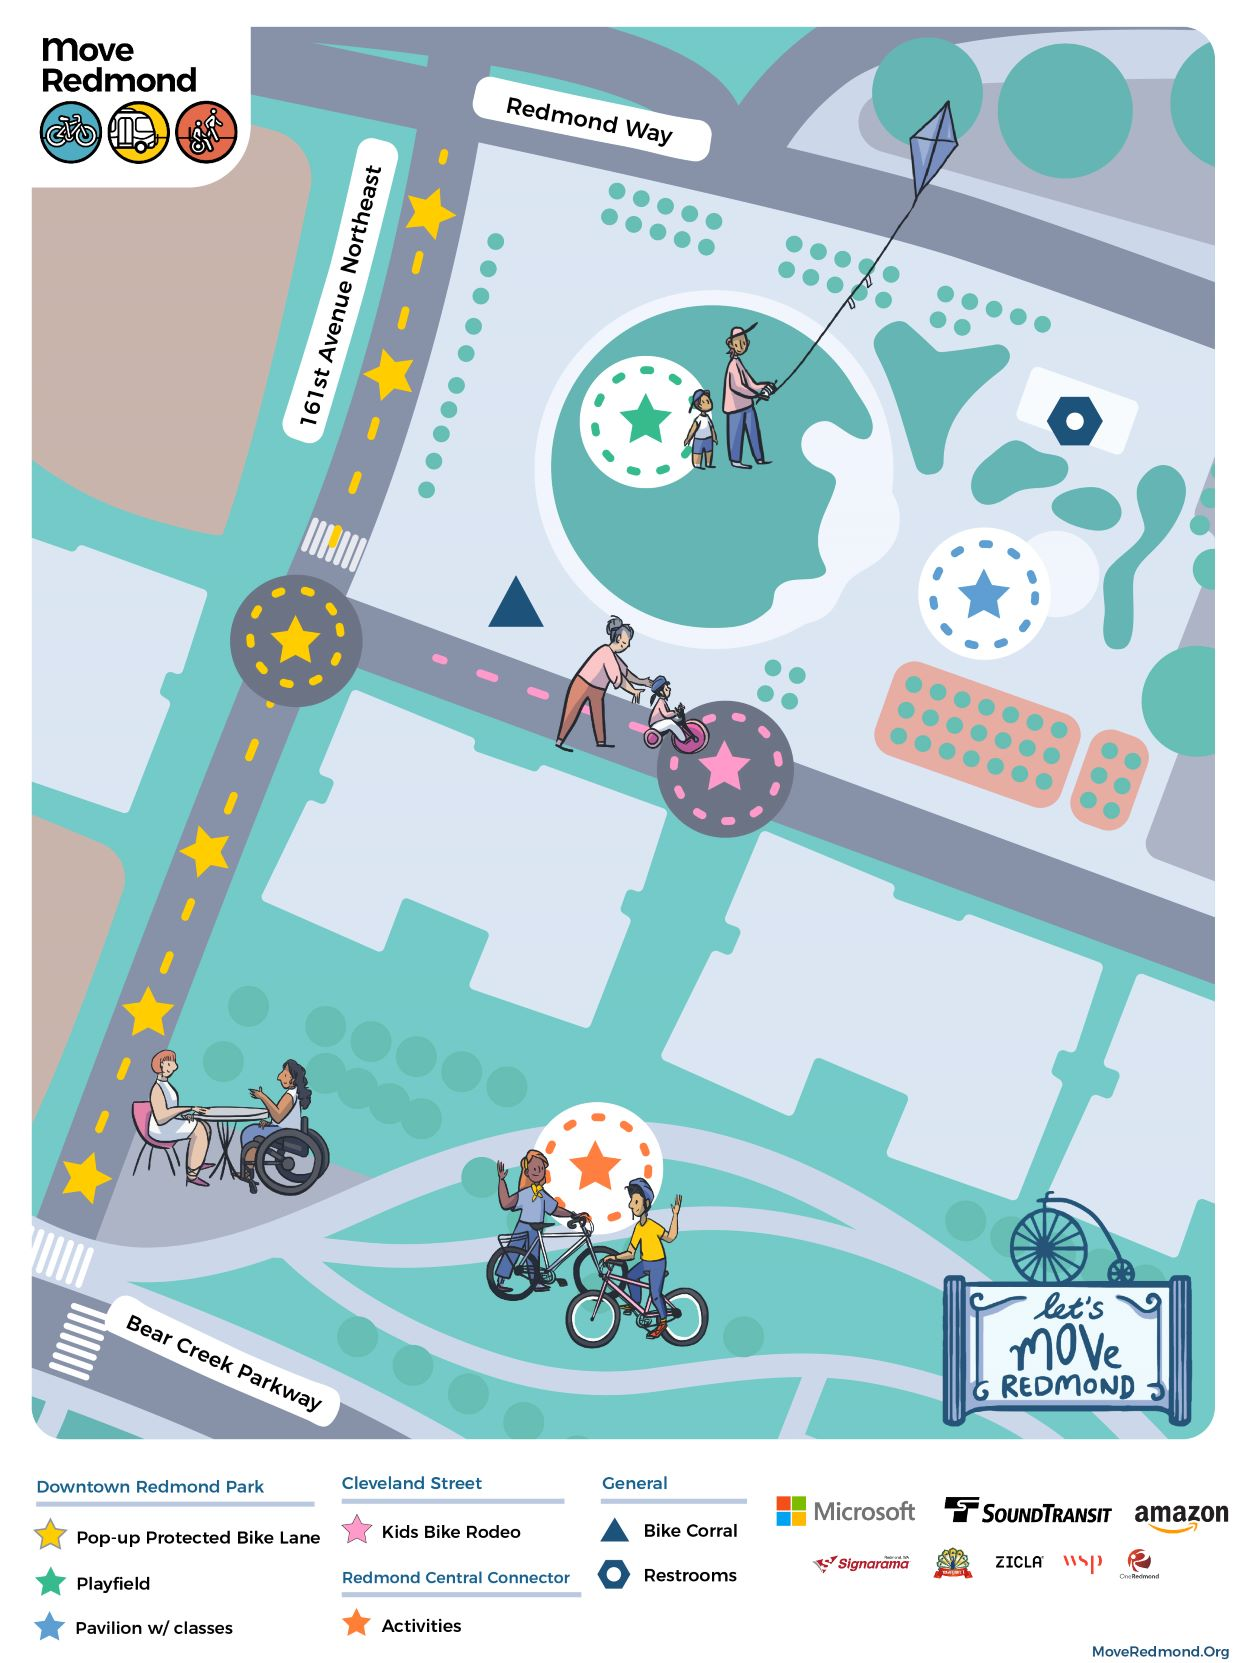 Illustrated map of Downtown Redmond Park, 161st Street and Redmond Central connector park. There will be activities at Redmond Central Connector Park and in Downtown Redmond Park. Along 161st will be a pop up protected bike lane. The Kids bike rodeo will happen on Cleveland Street in front of Downtown Redmond Park. Bathrooms in Downtown Redmond Park.